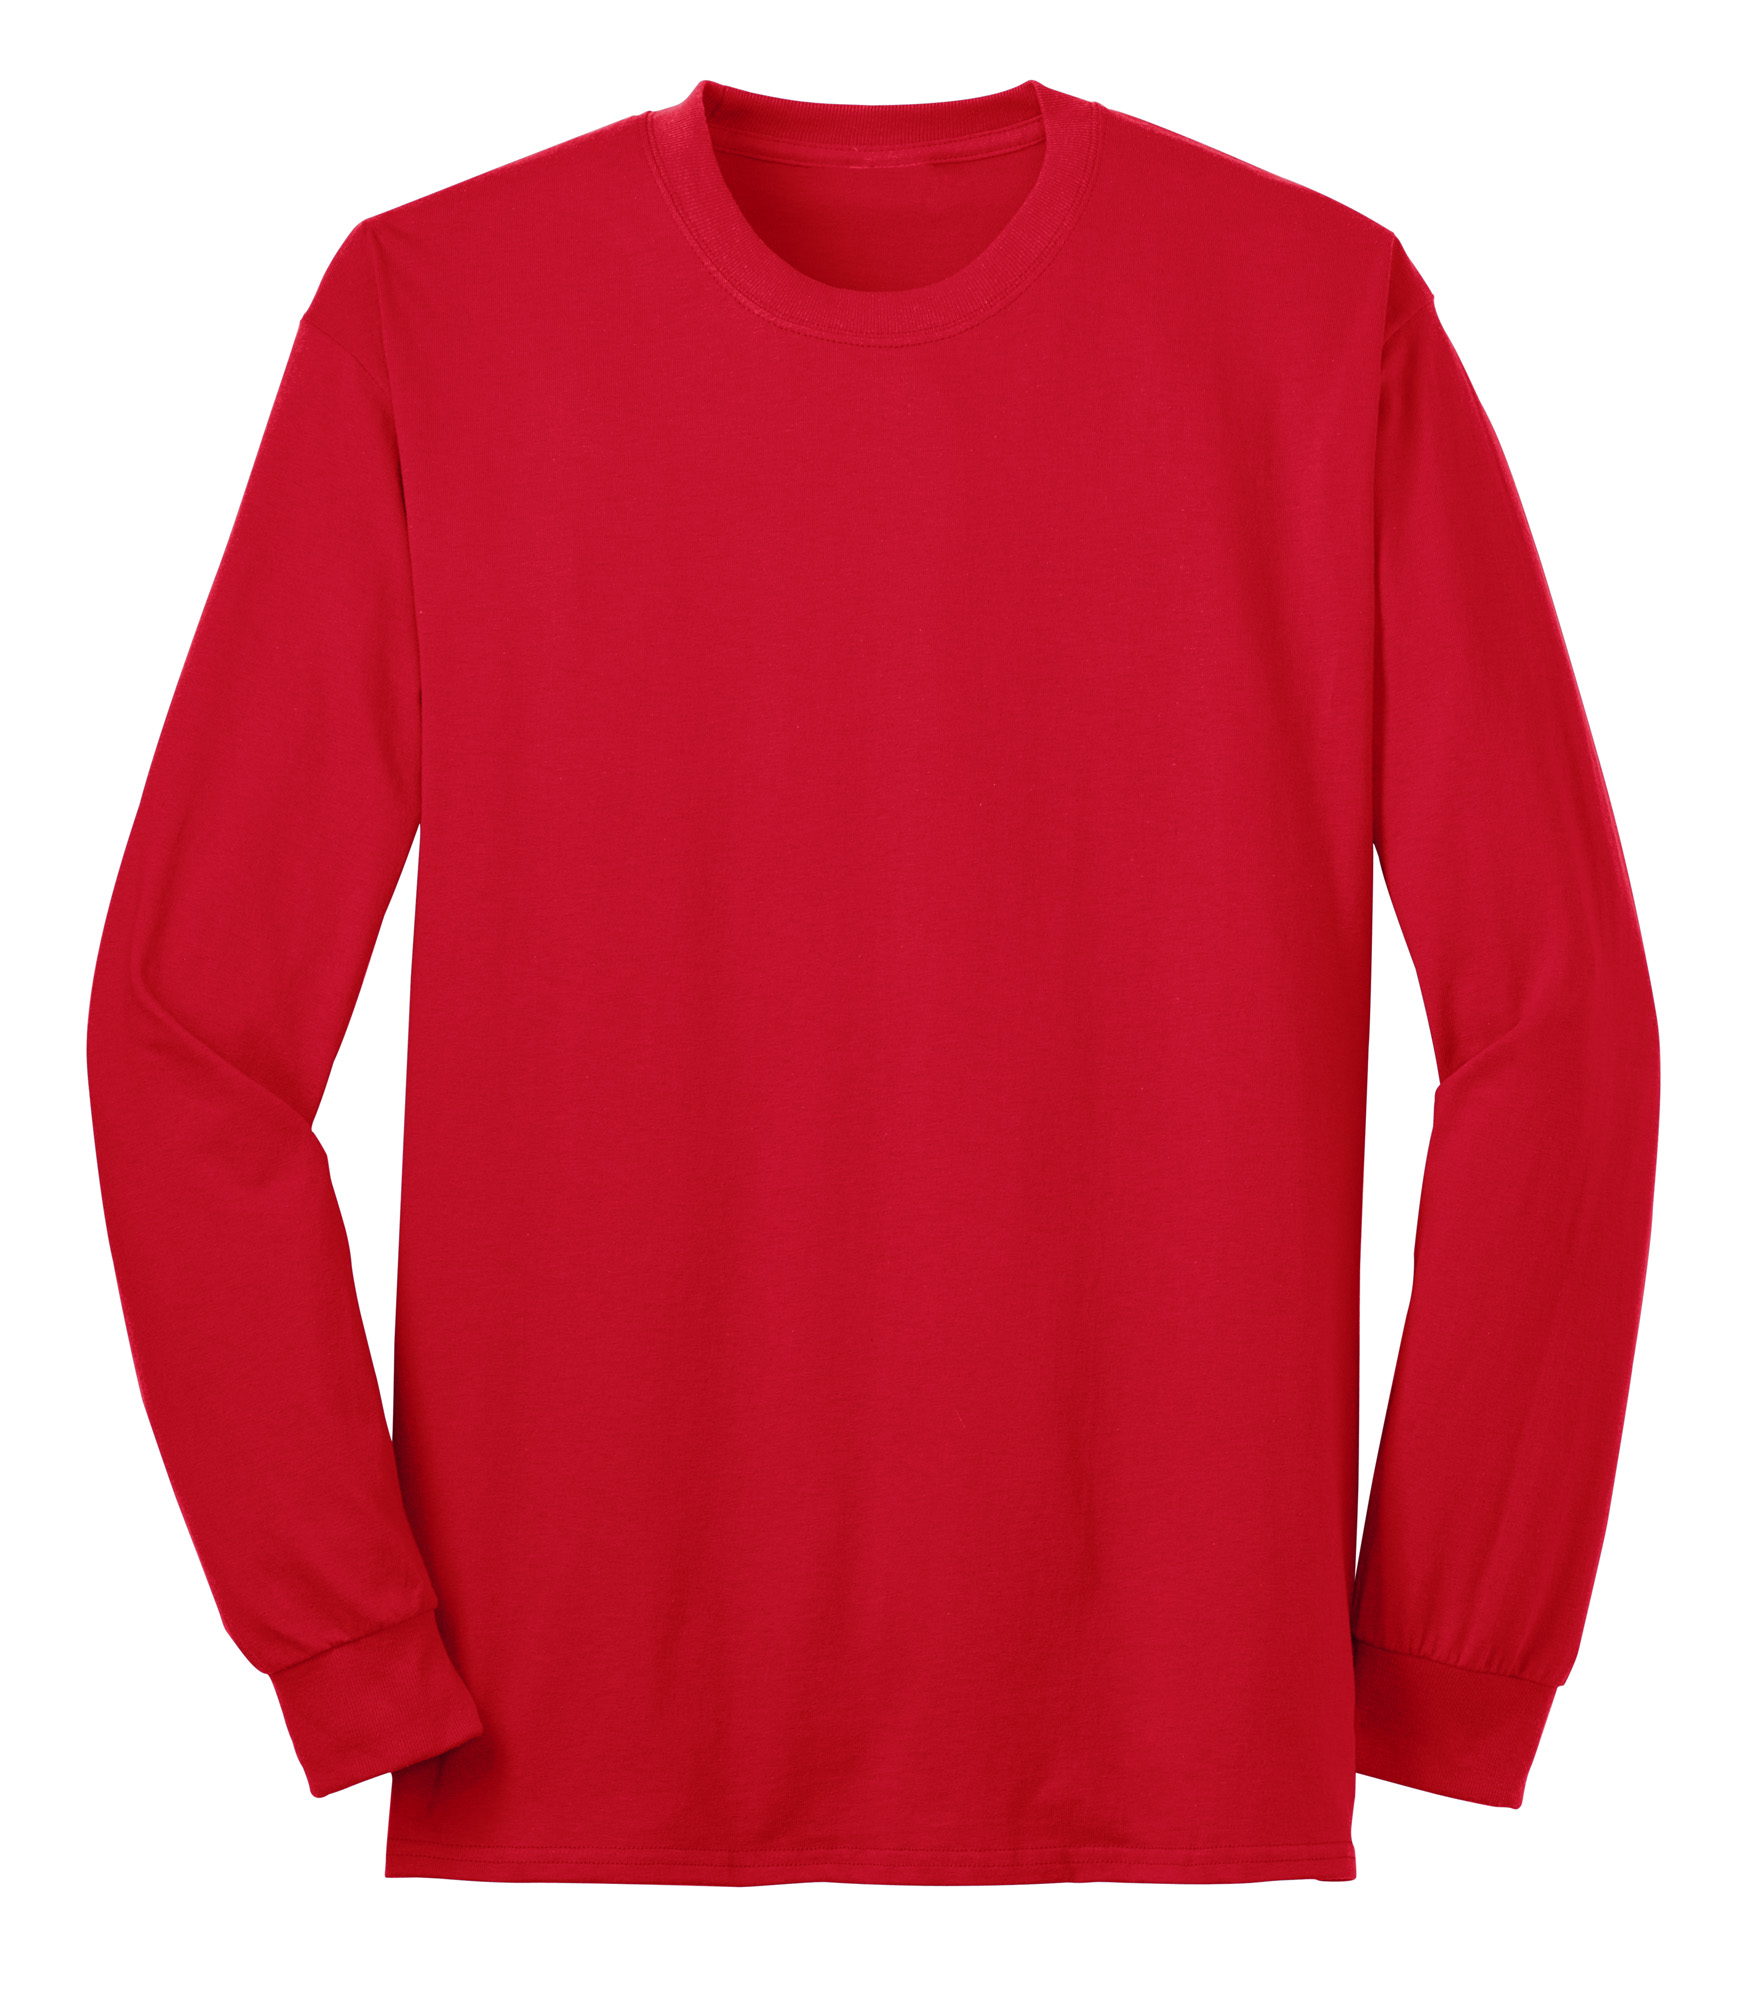 Port company long sleeve 50 50 cotton poly t shirt for The red t shirt company